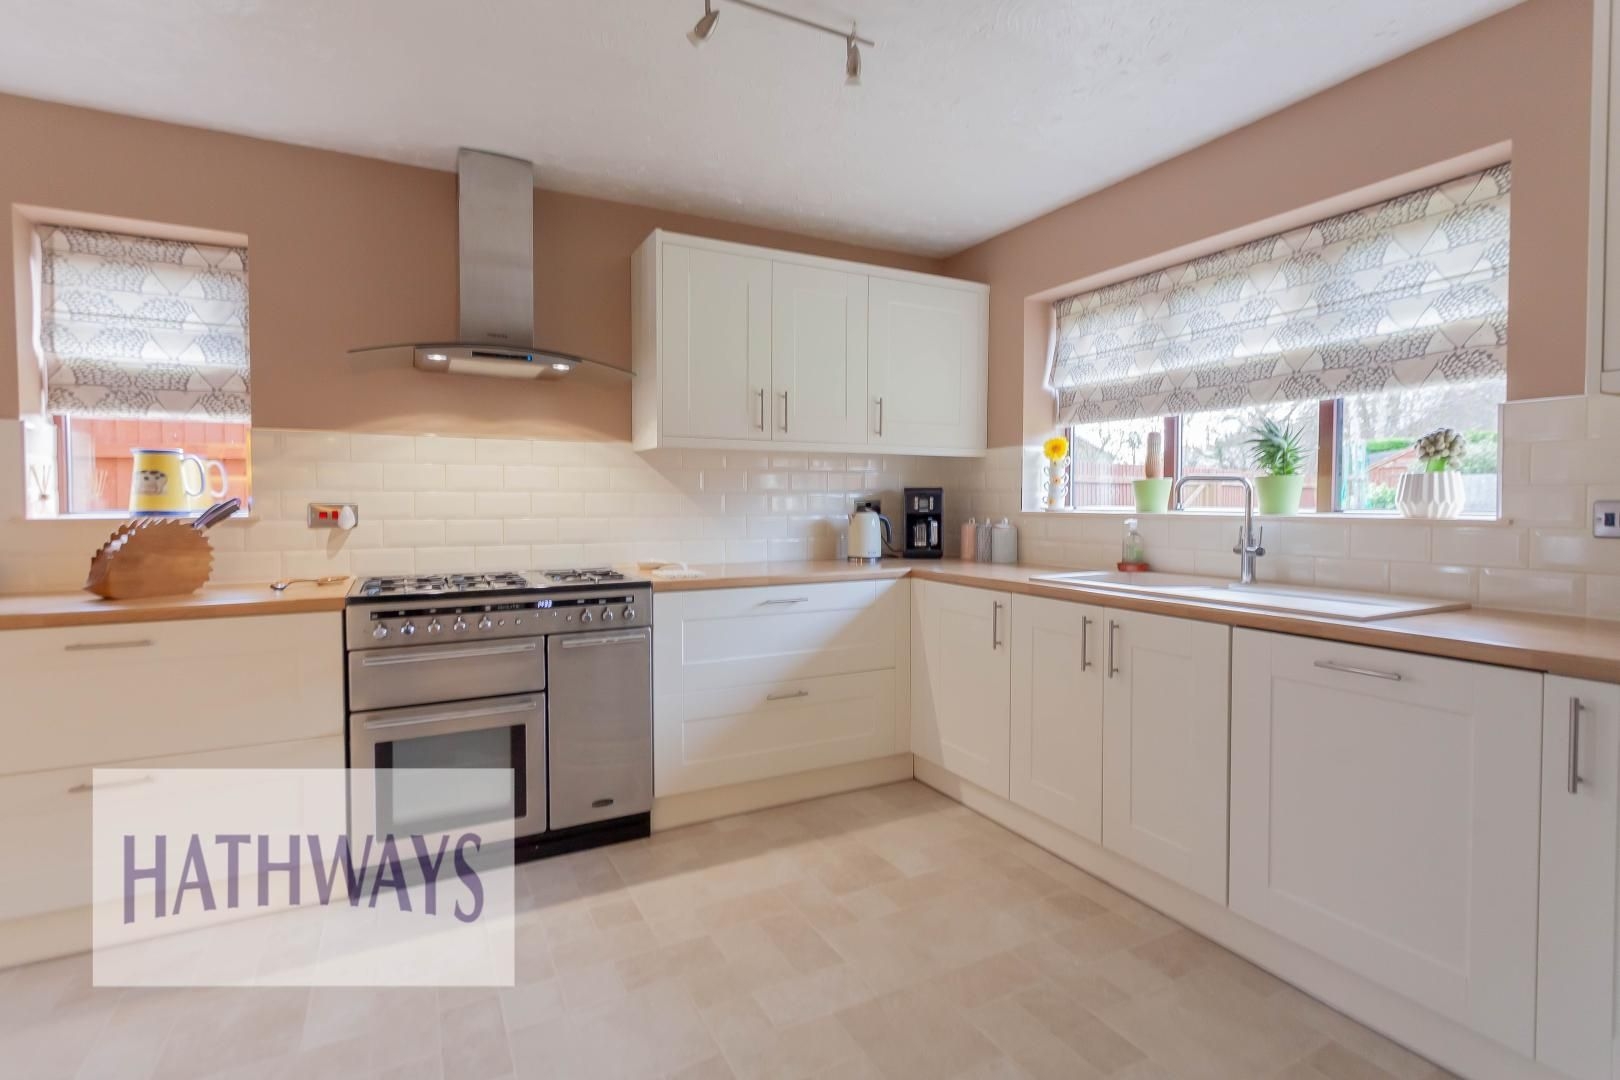 4 bed  for sale in Candwr Park  - Property Image 8